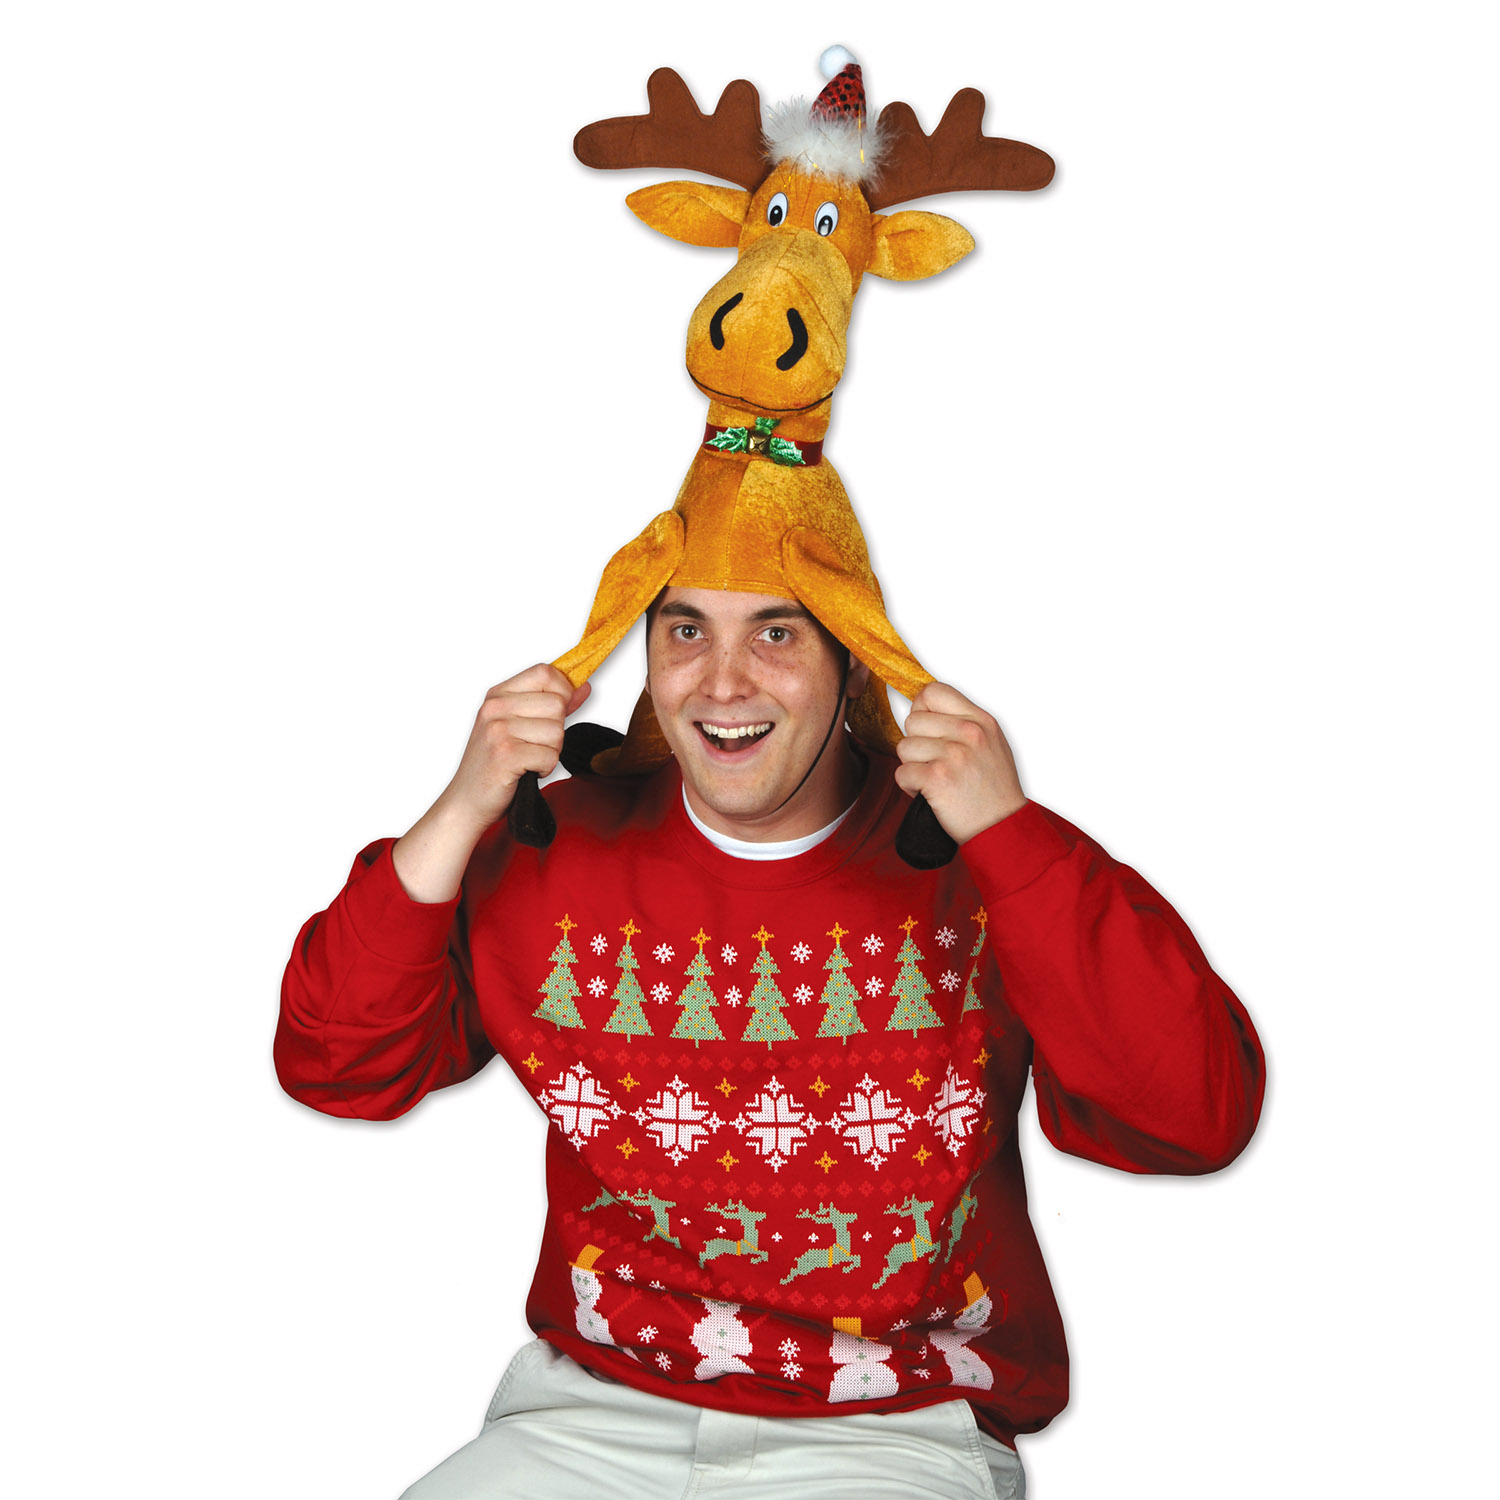 6 Units of Plush Christmas Moose Hat one size fits most - Party Hats & Tiara